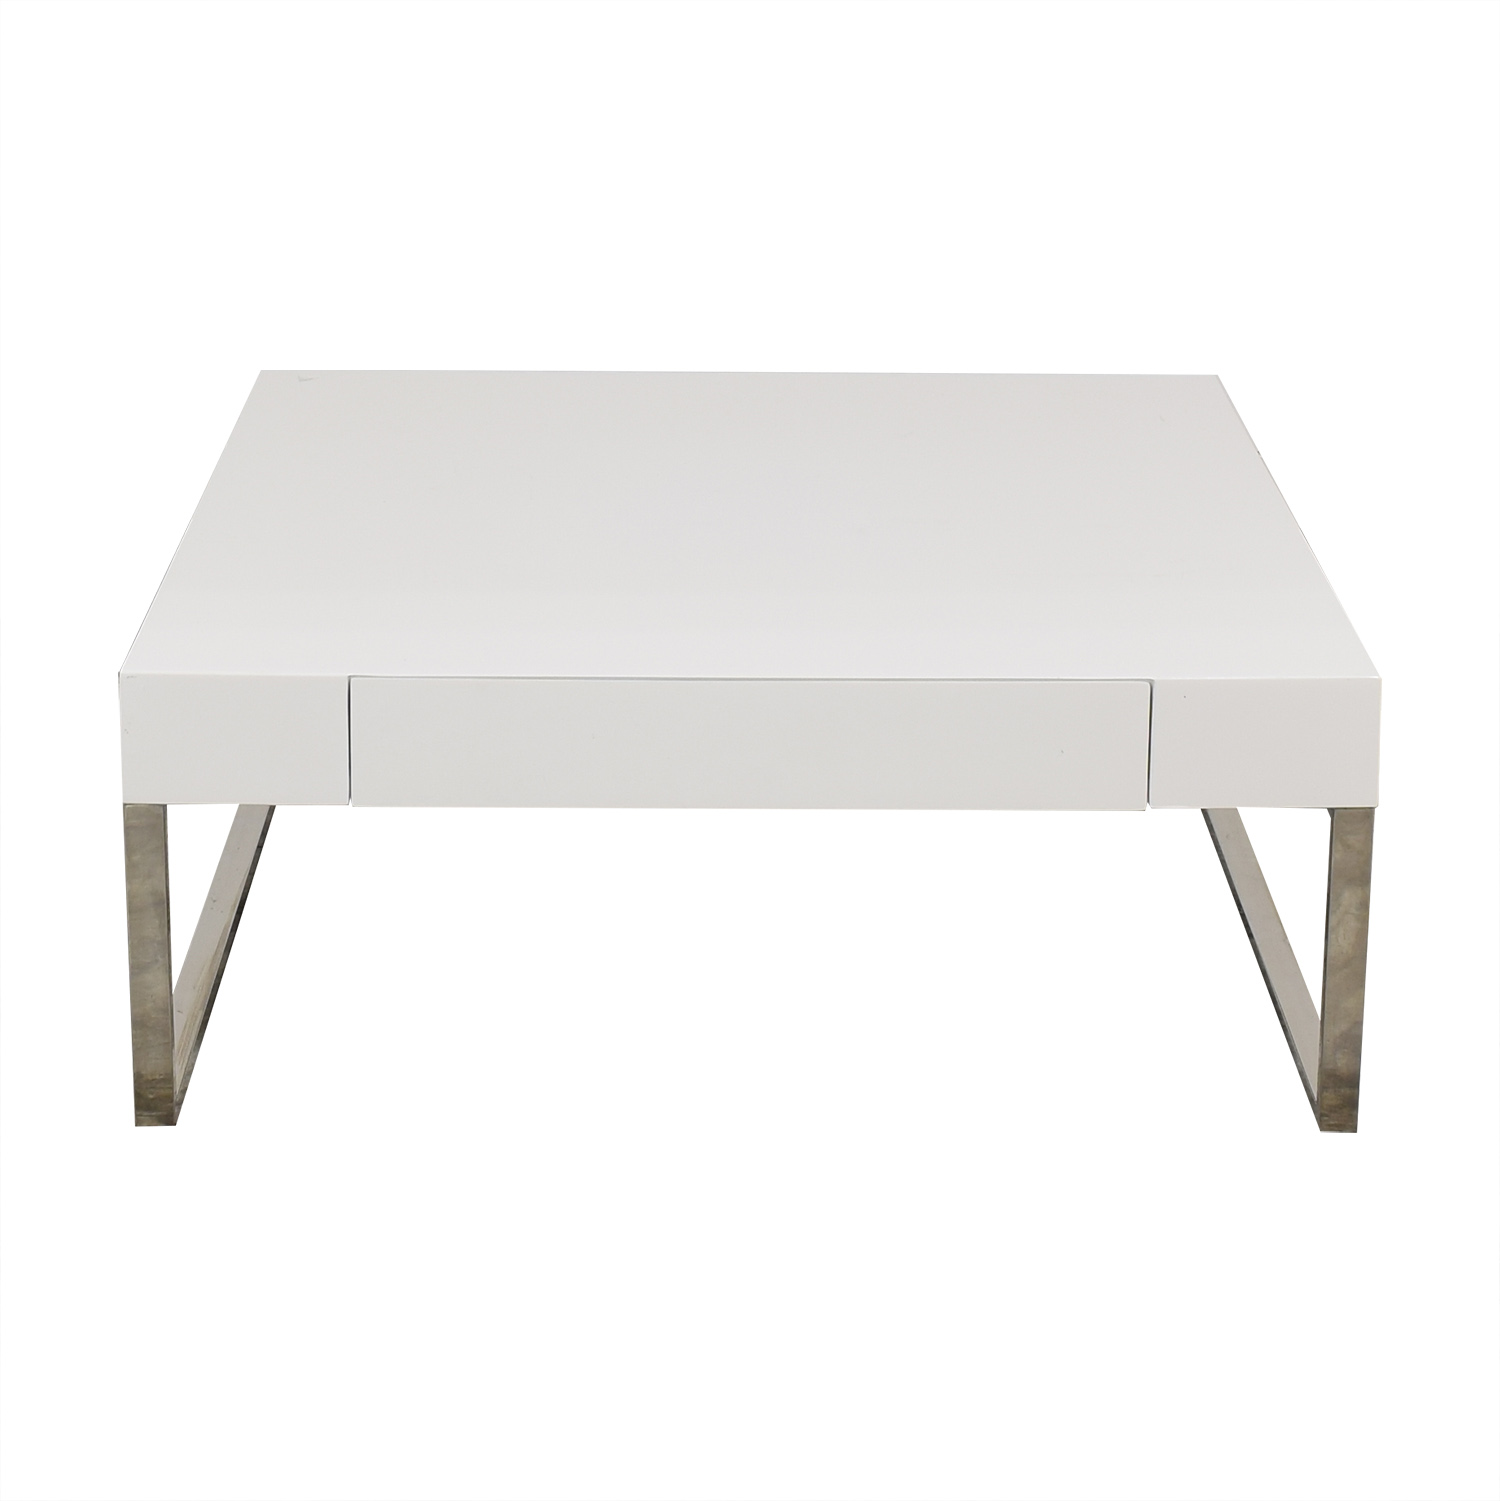 Modani Modani Gavino Coffee Table for sale